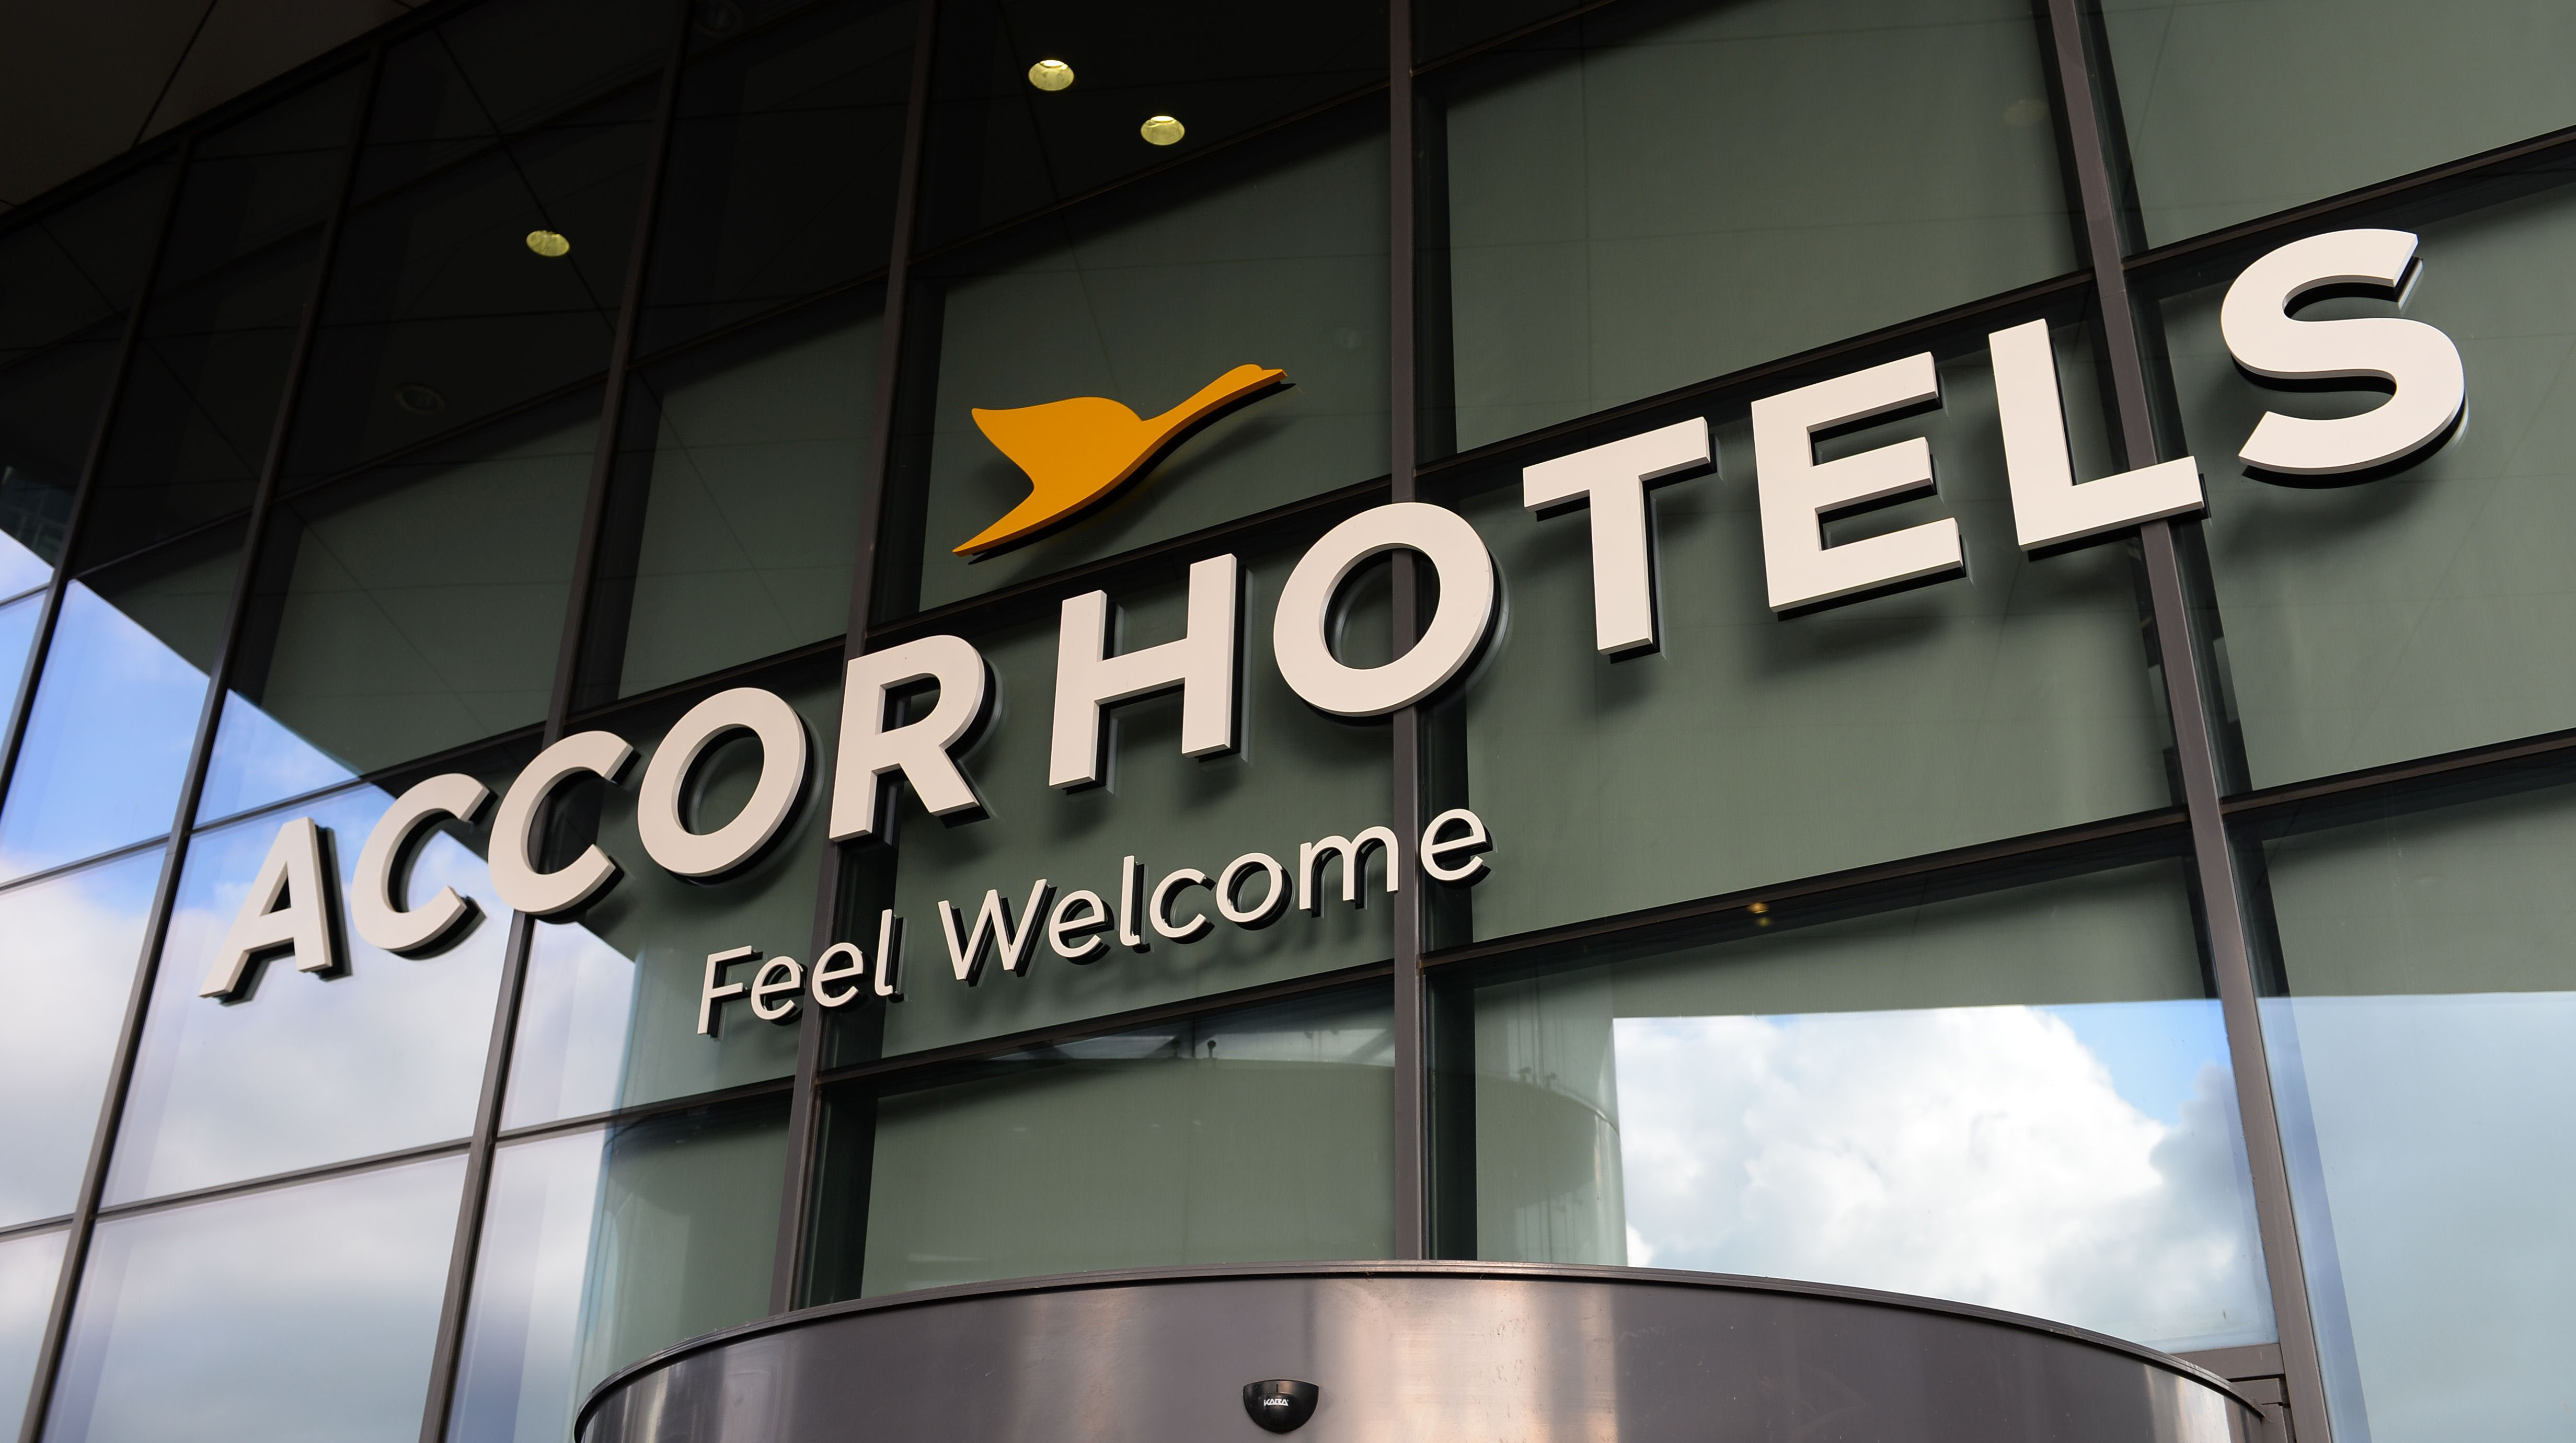 AccorHotels plans to expand its luxury platform